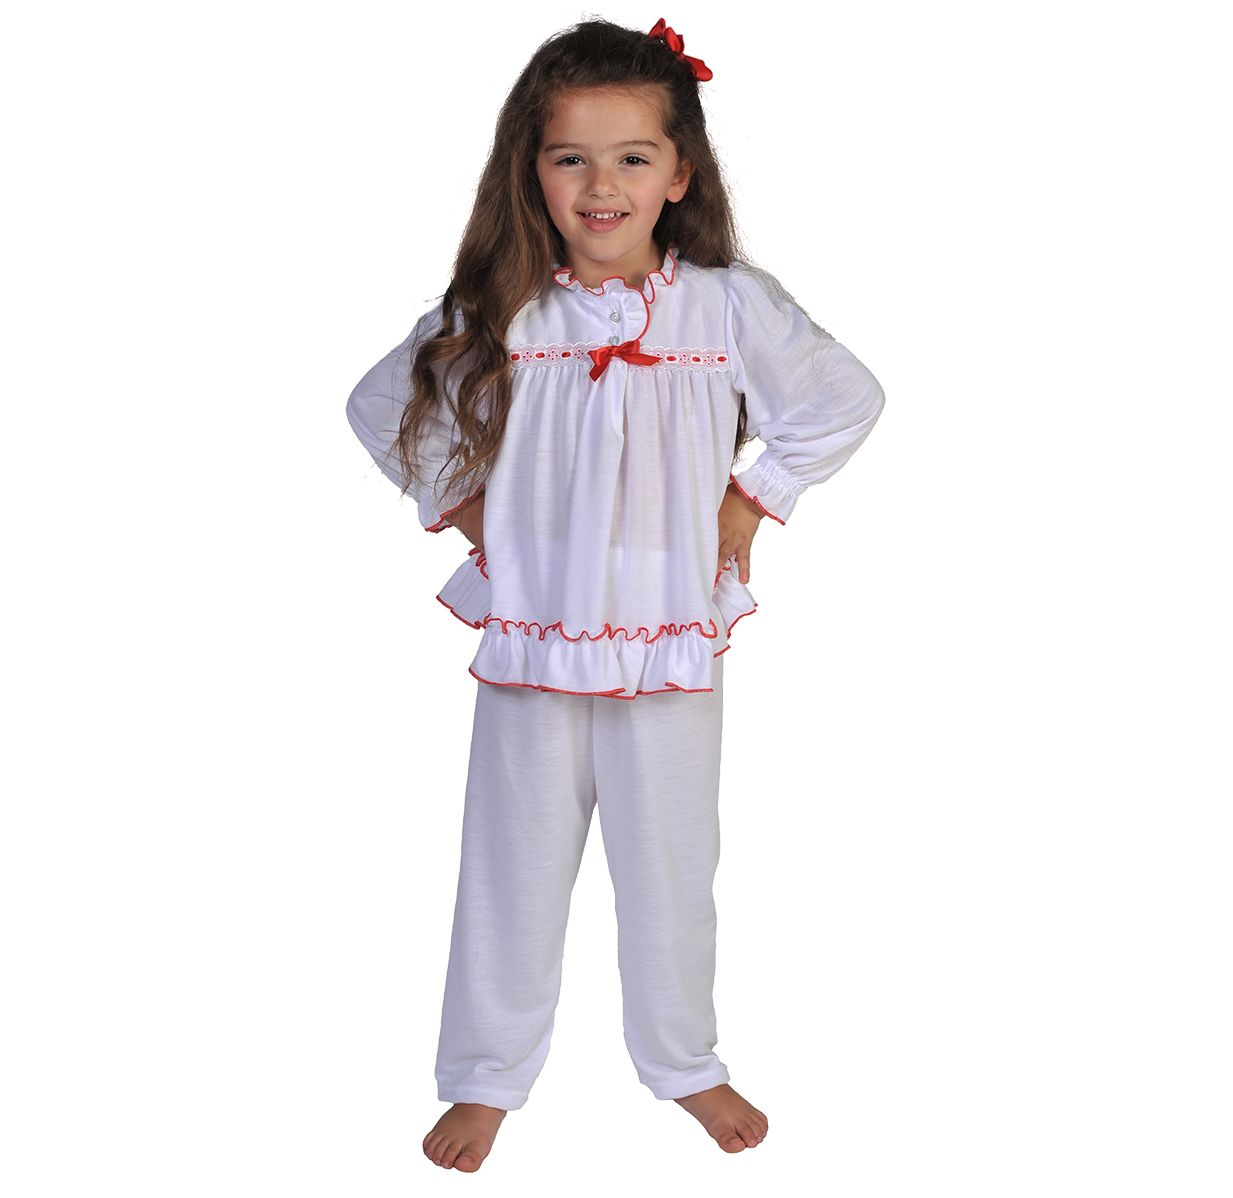 Clara\'s White Nightgown & PJ\'s | Gifts for Your Little Ballerina ...